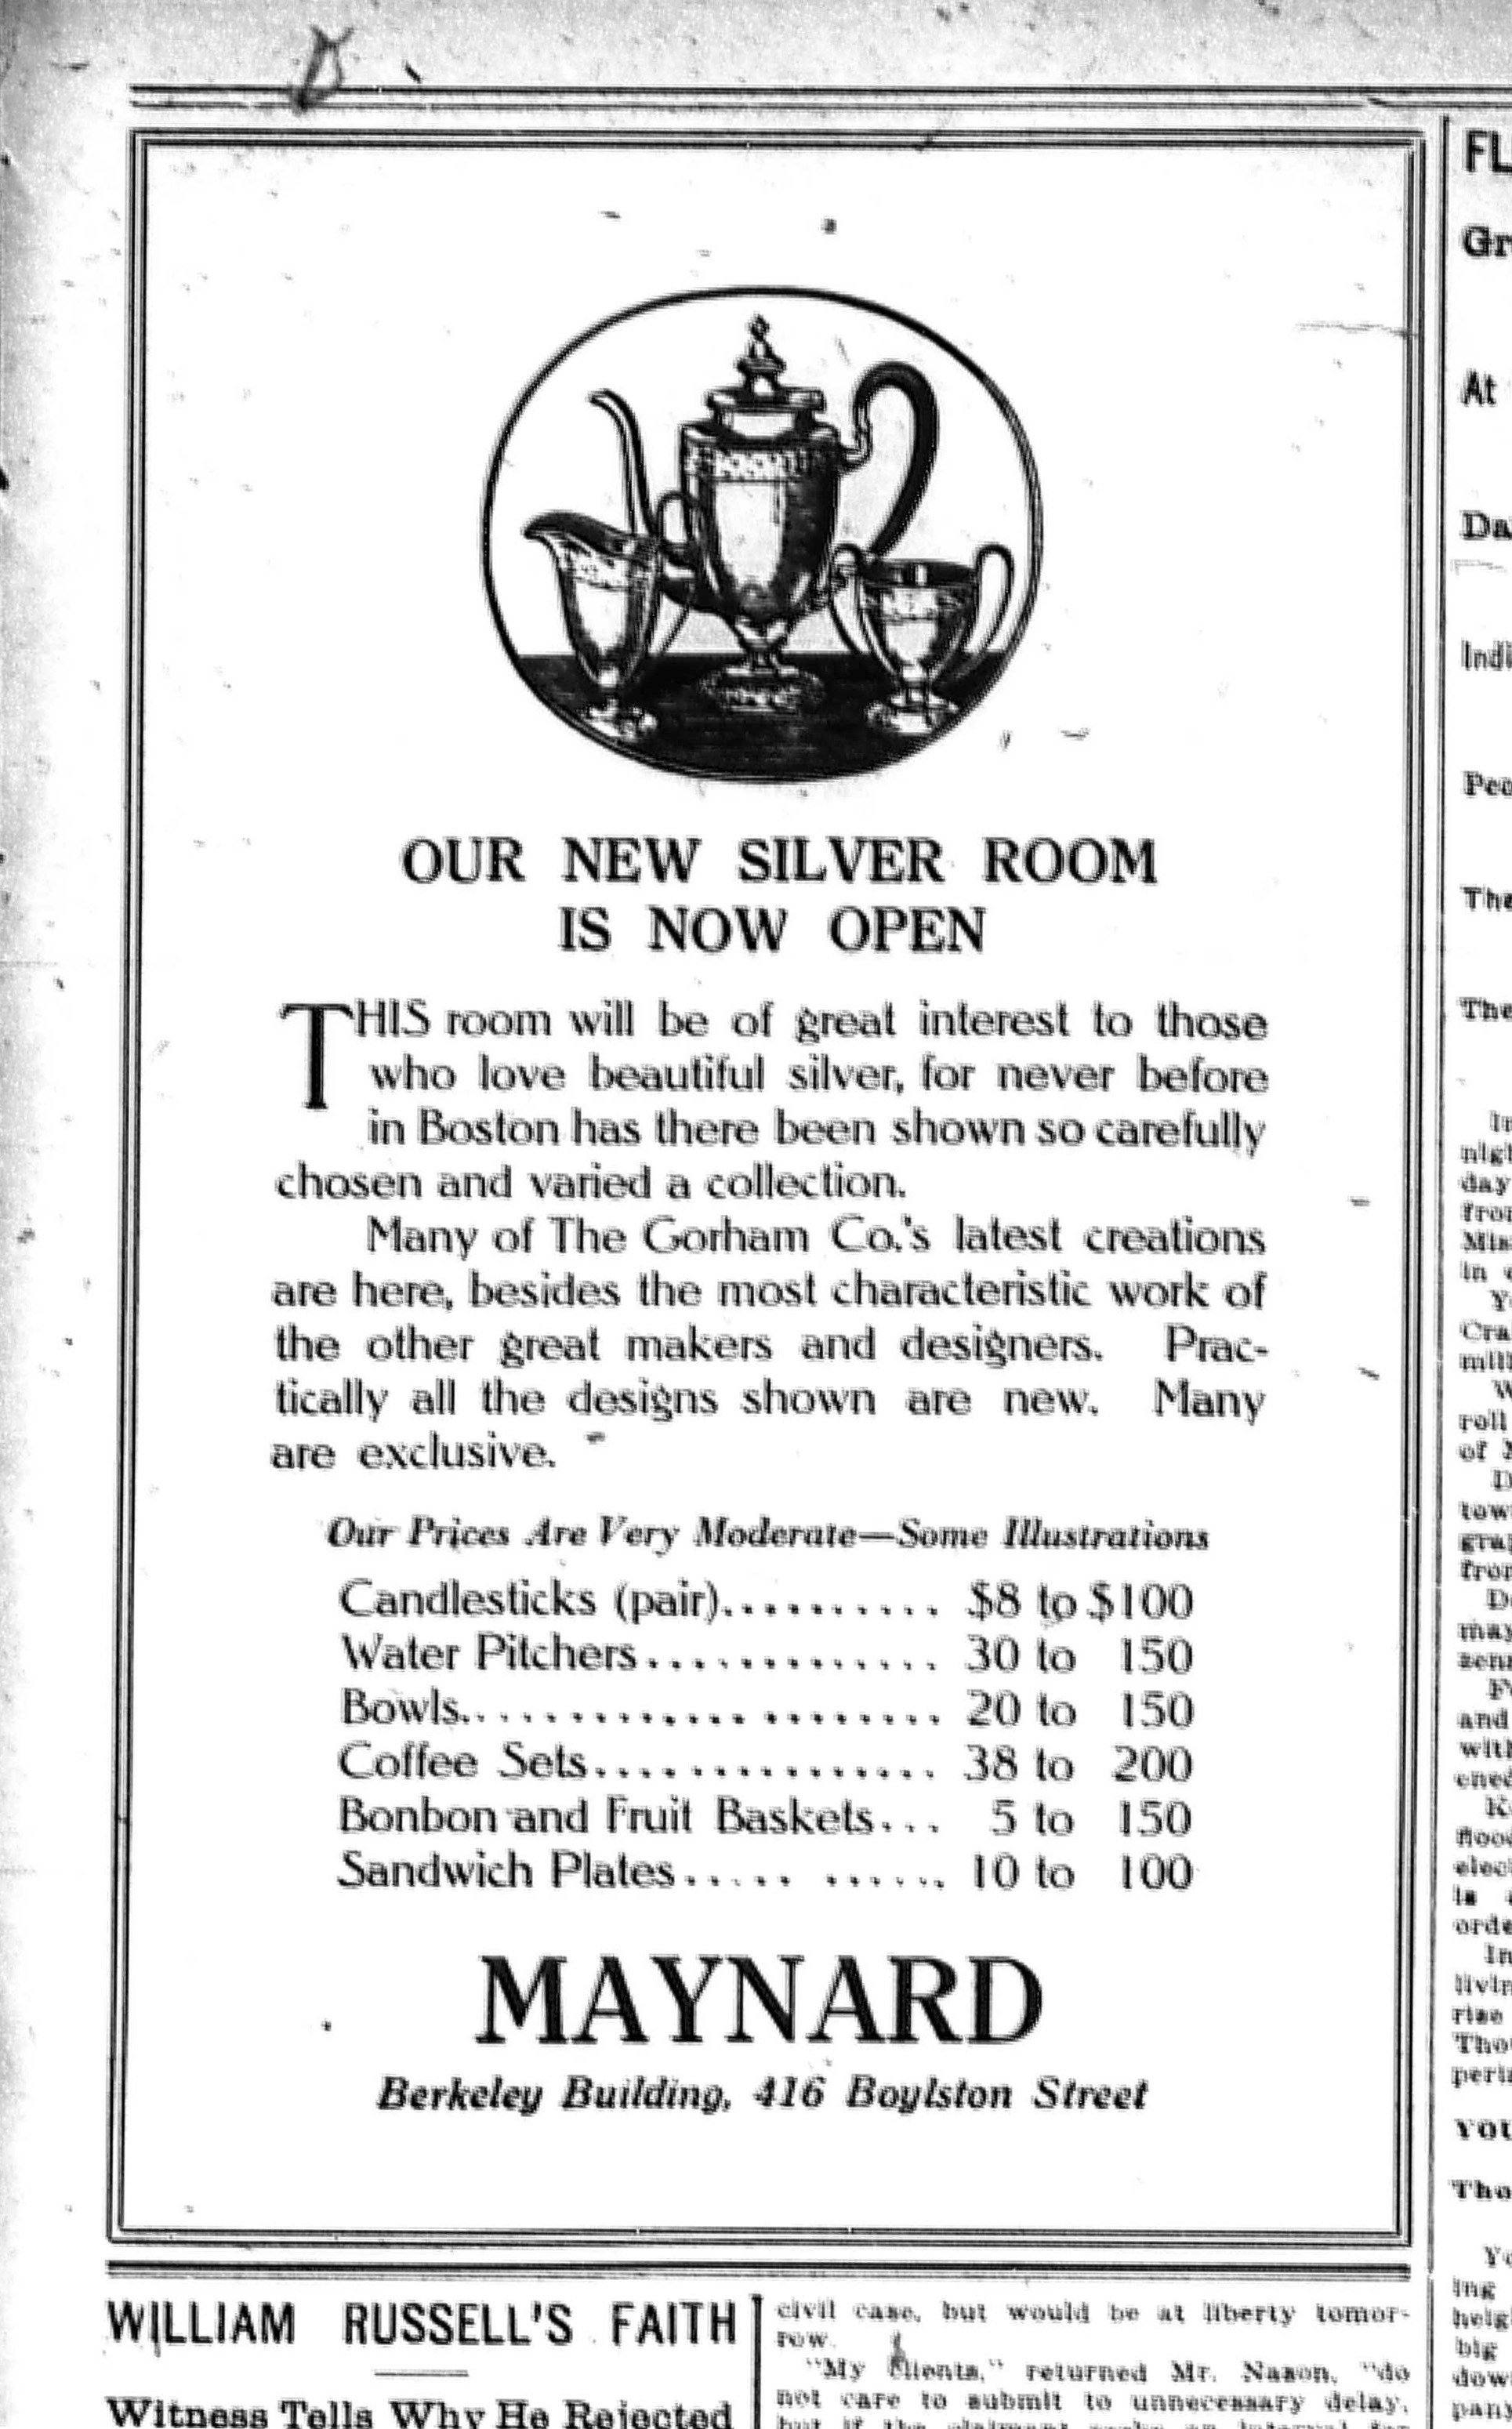 """""""Our New Silver Room Is Now Open"""" advertisement by Maynard & Co. in the Boston Evening Transcript, March 25, 1913. Illustration by W.A. Dwiggins?"""